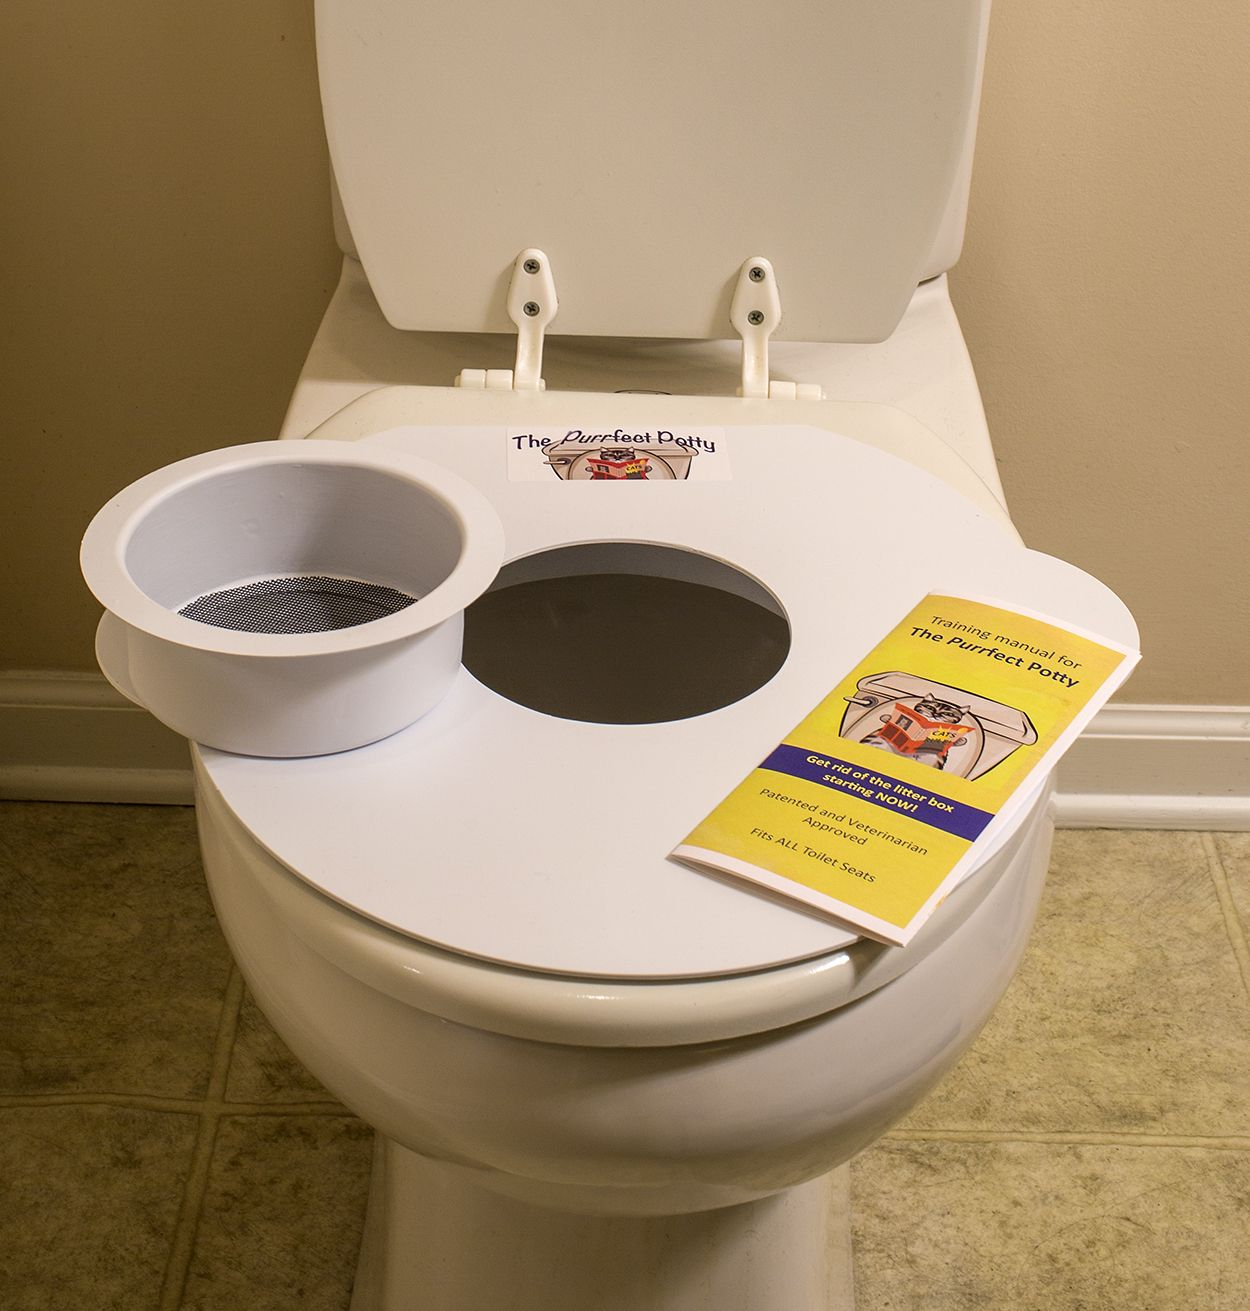 A Cat Toilet Training Seat That Trains Your Cat To Use The Toilet